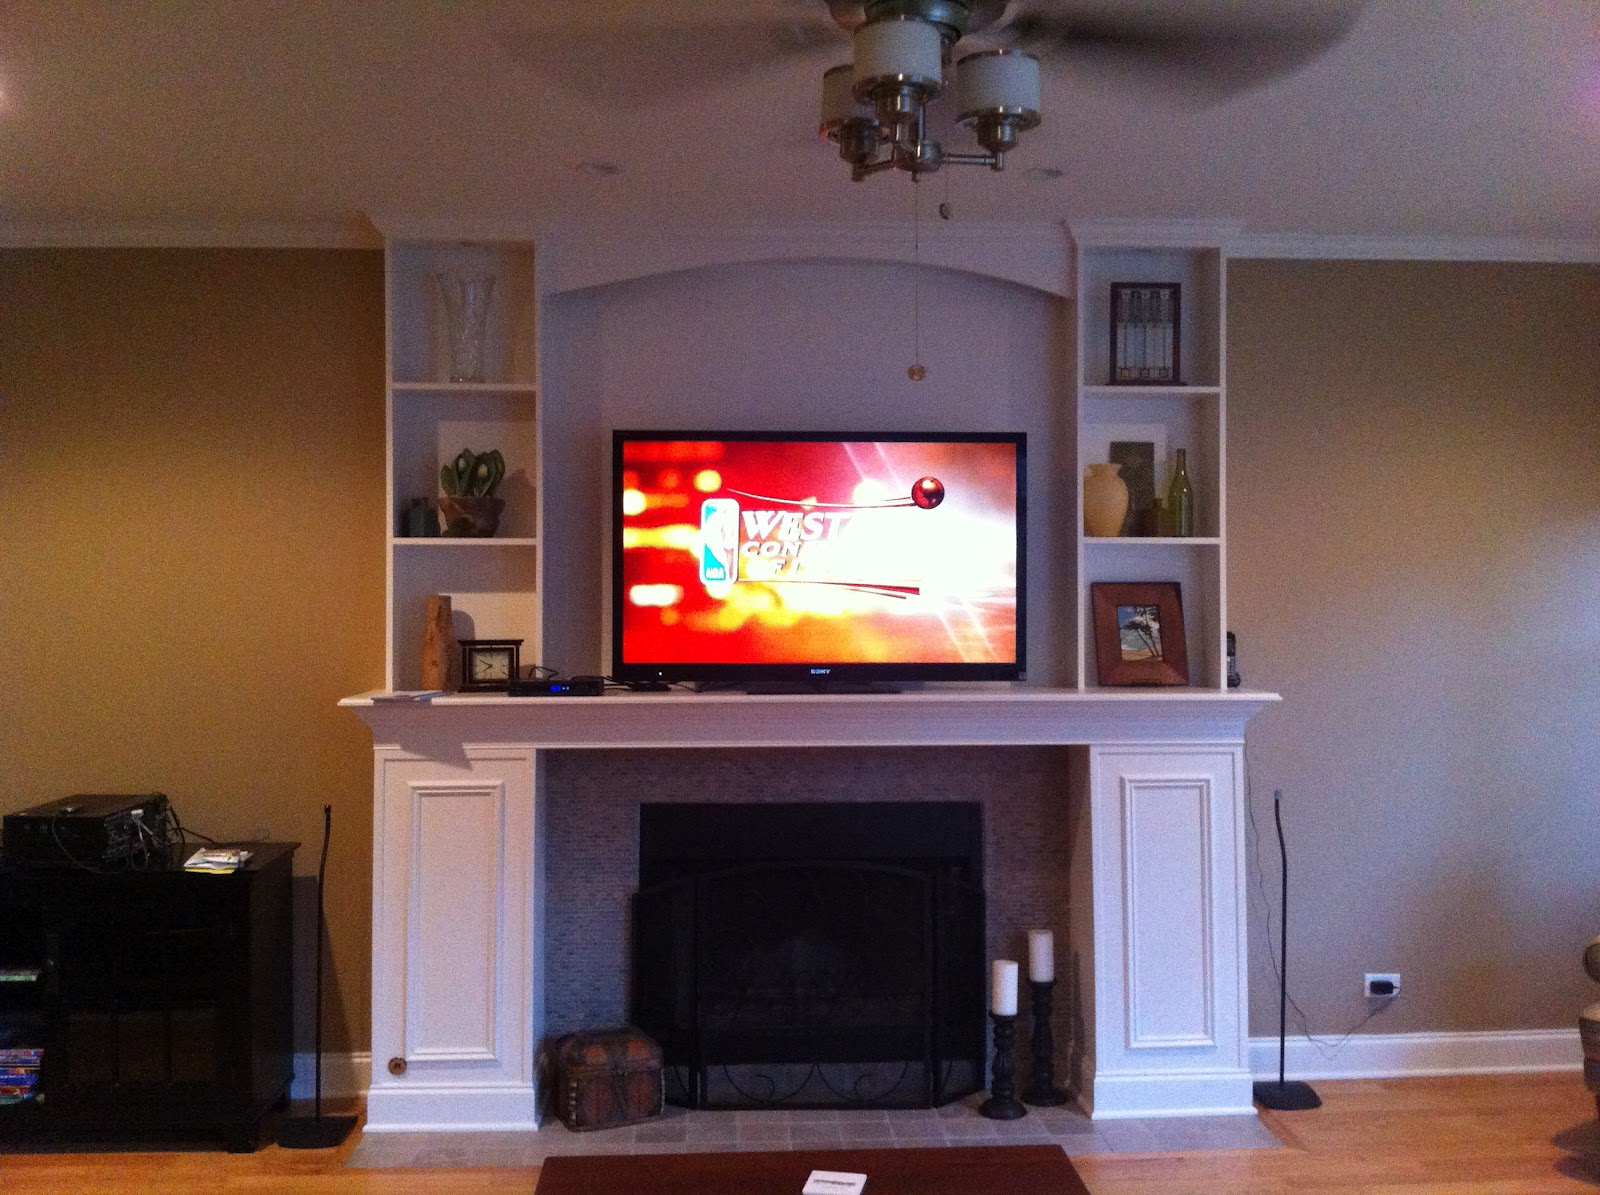 hight resolution of when we re done i ll have a 55 led tv mounted over the fireplace with high speed hdmi cabling running through the walls directly to the set for our